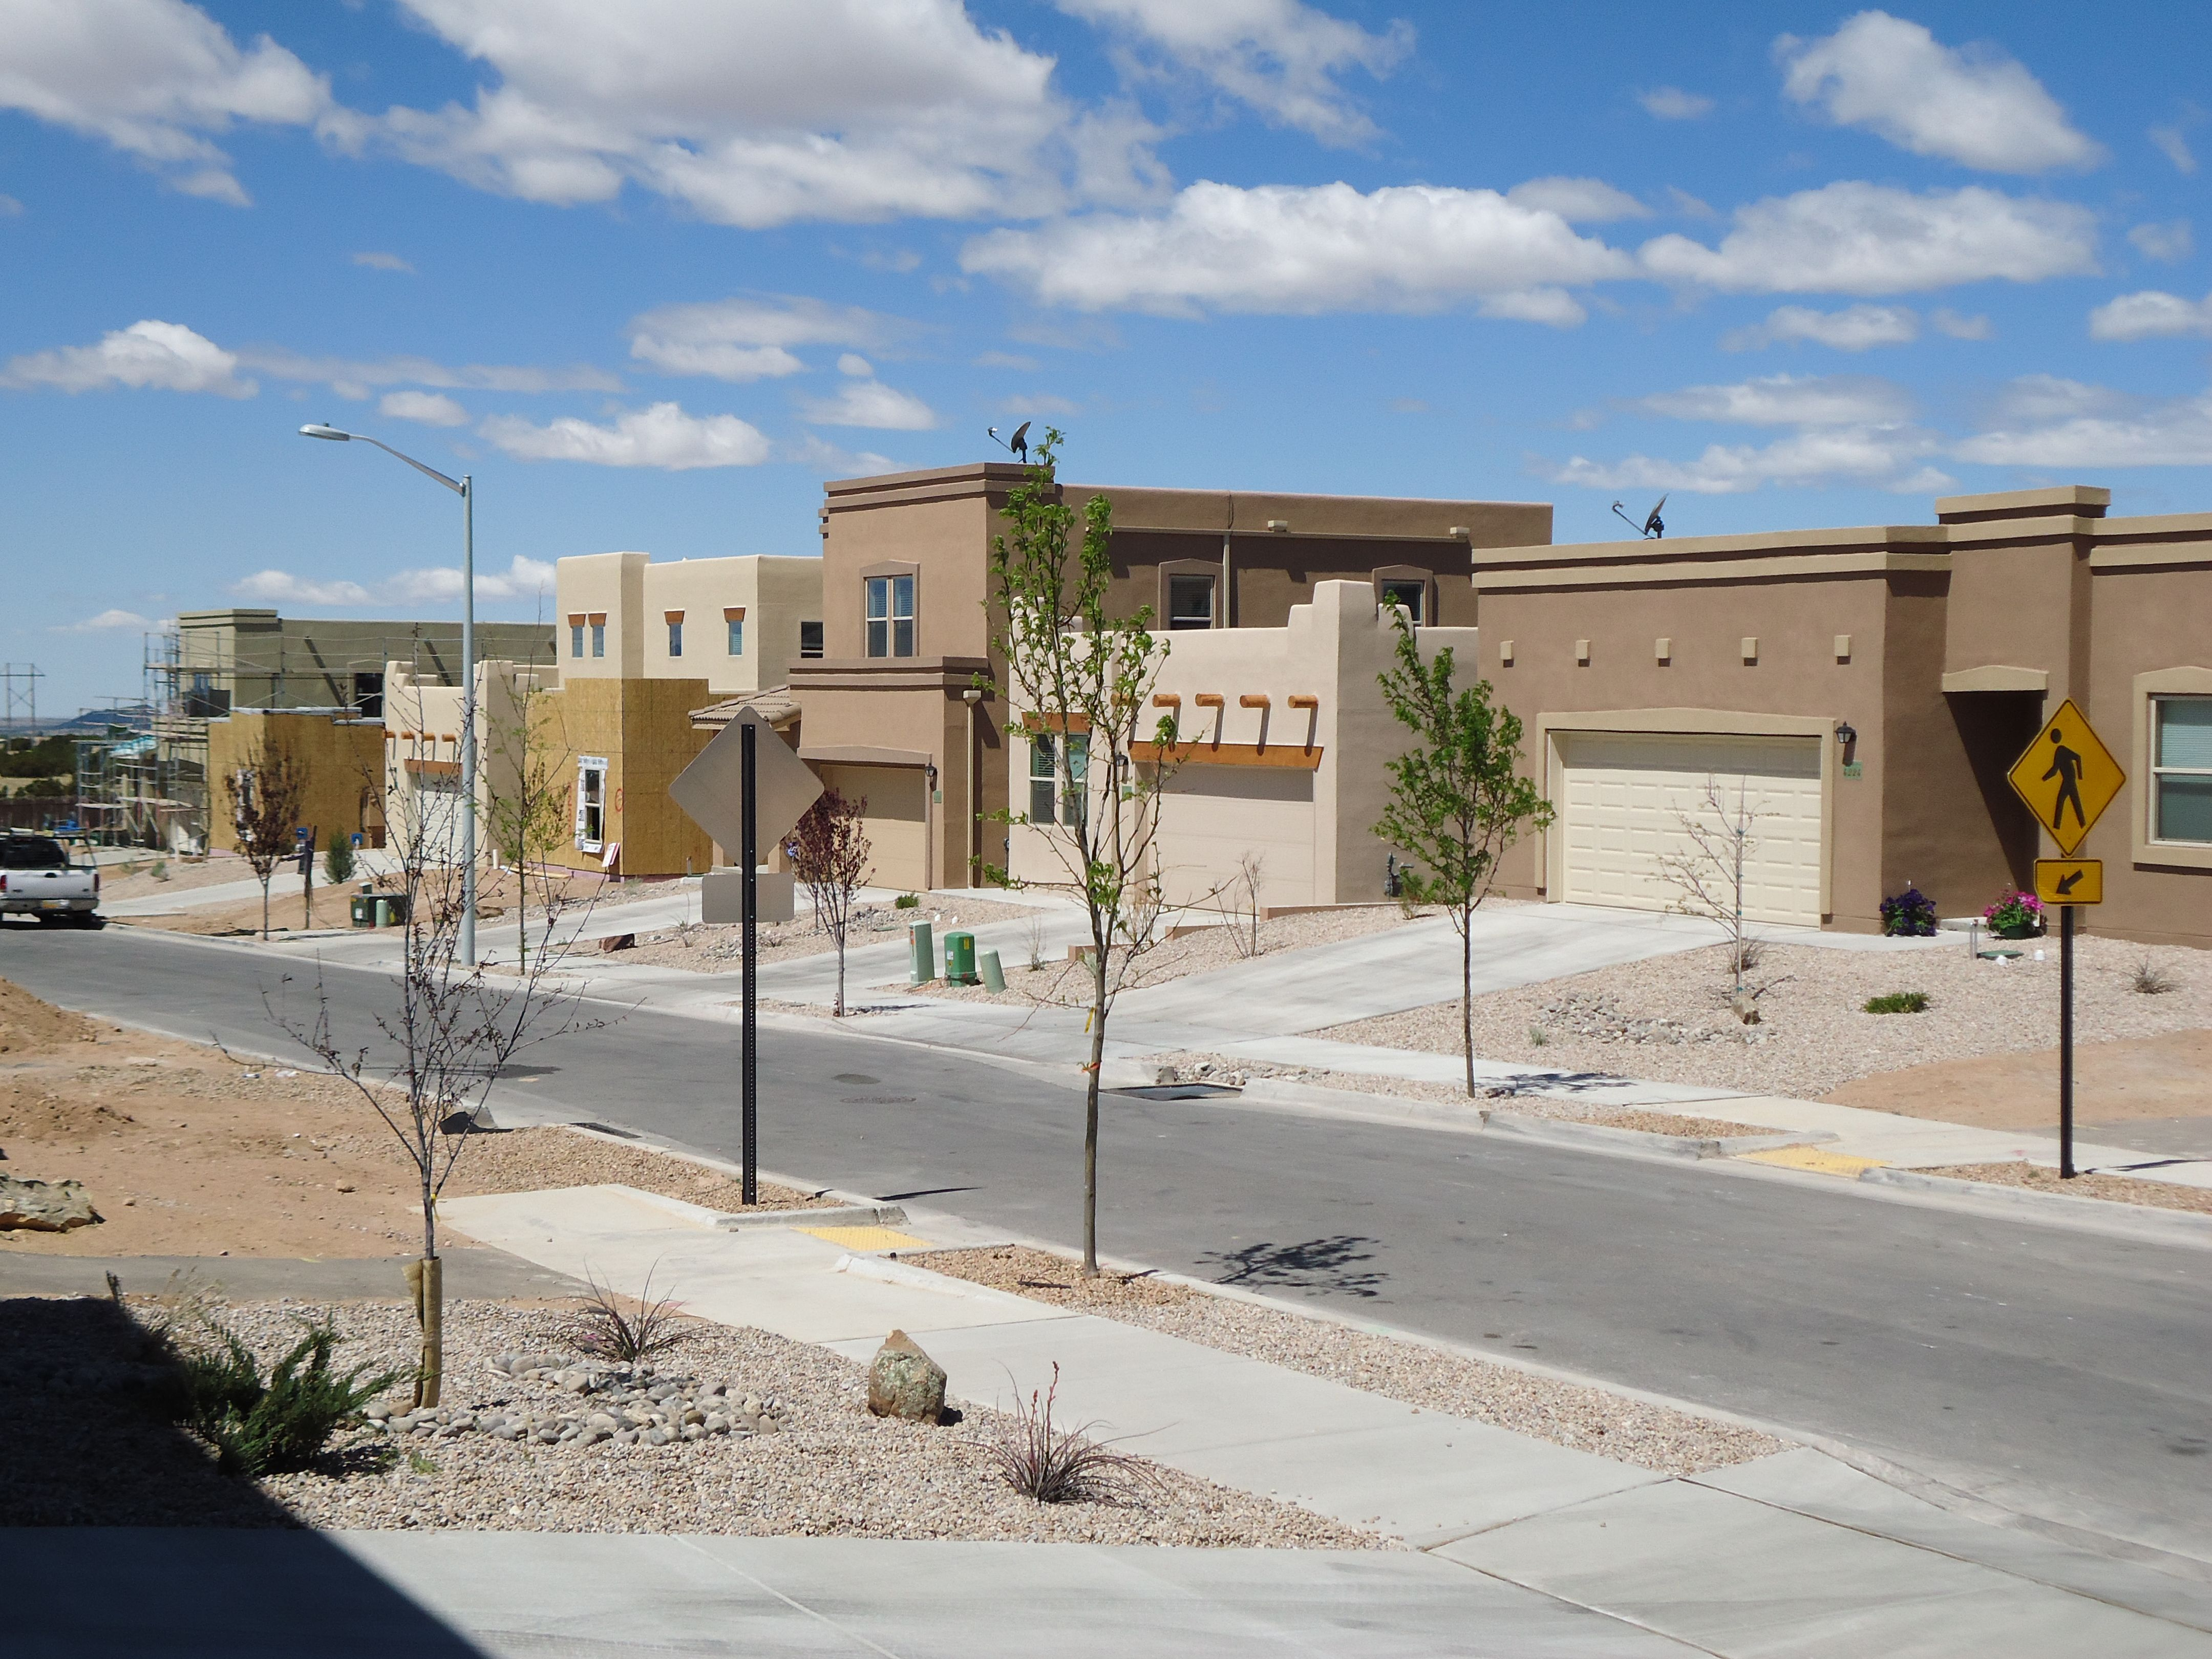 Homes Are Territorial Or Pueblo Style And Stuccoed With Flat Roofs New Mexico Homes Santa Fe Style Affordable Housing